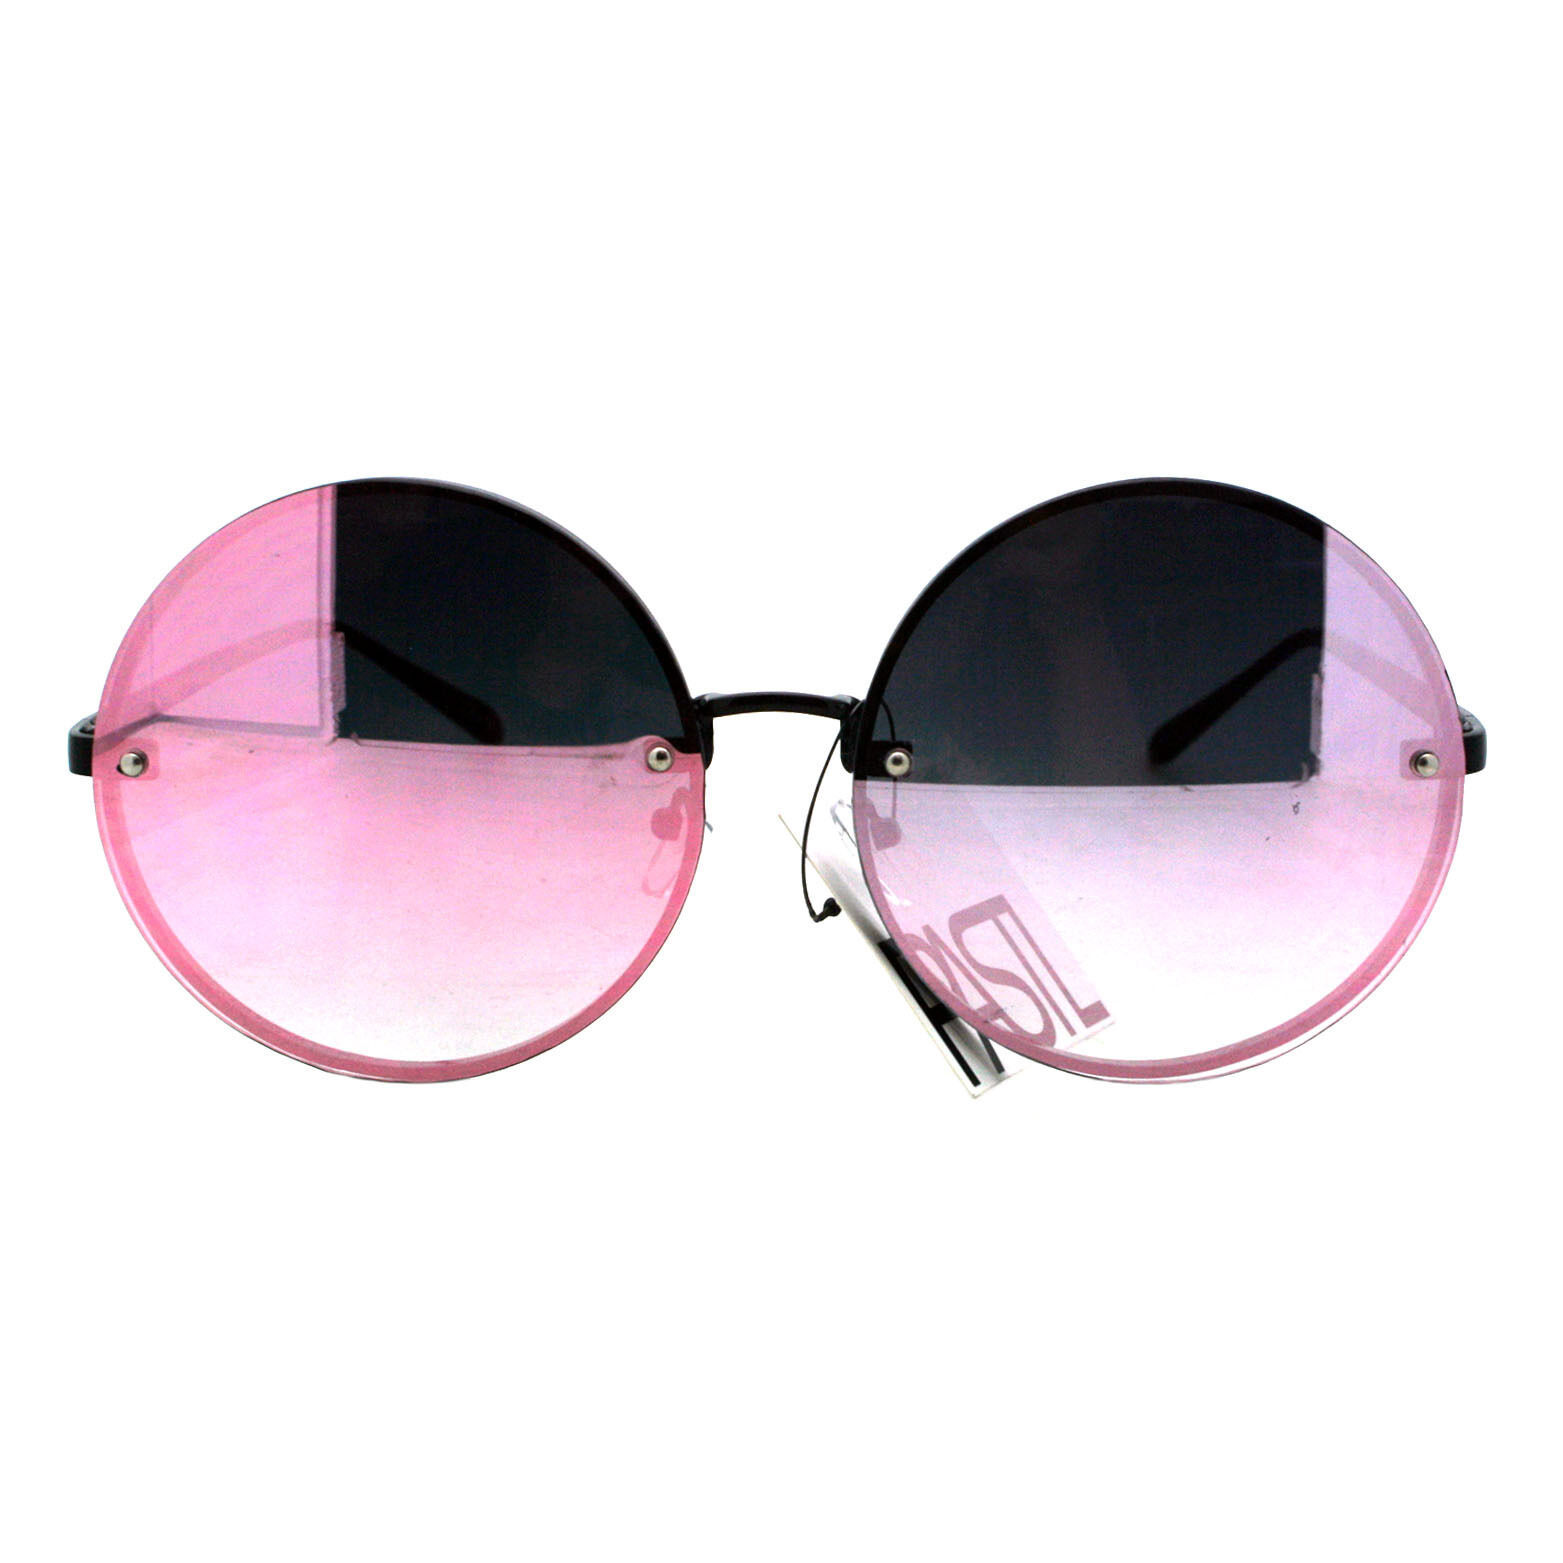 PASTL Super Oversized Round Sunglasses Womens Pink Mirror Lens UV 400 image 5